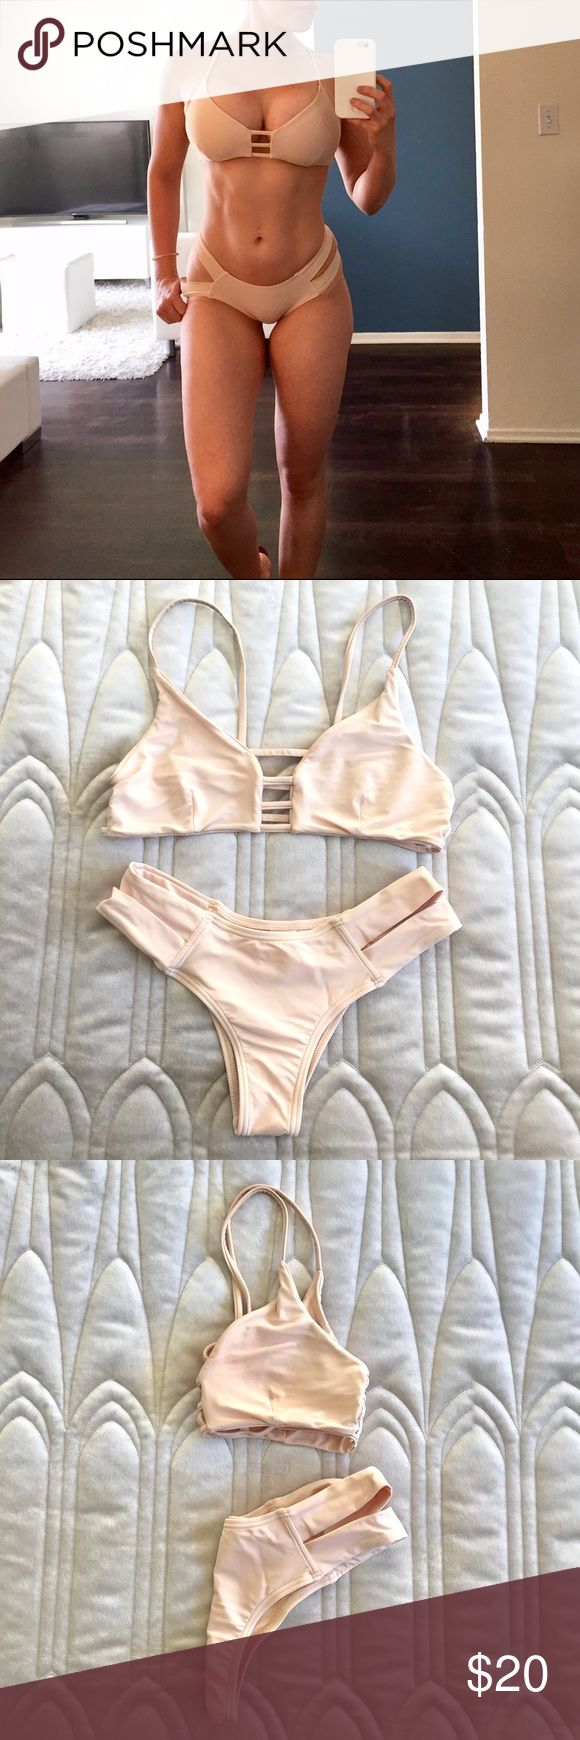 TRENDY, dusty pink/ cream color BIKINI SET, size M INFO Previously loved. In great condition.  Matching TWO PIECE, nude/ dusty pink BIKINI SET with cut out details on top and bottoms.  DETAILS 2 piece bikini set. Comfortable wear. Curve hugging. Cut out details on top and bottoms. Strapped halter top. Cream/ dusty pink color. Size M (bottoms fit small).  CARE Machine wash. ELINA Swim Bikinis